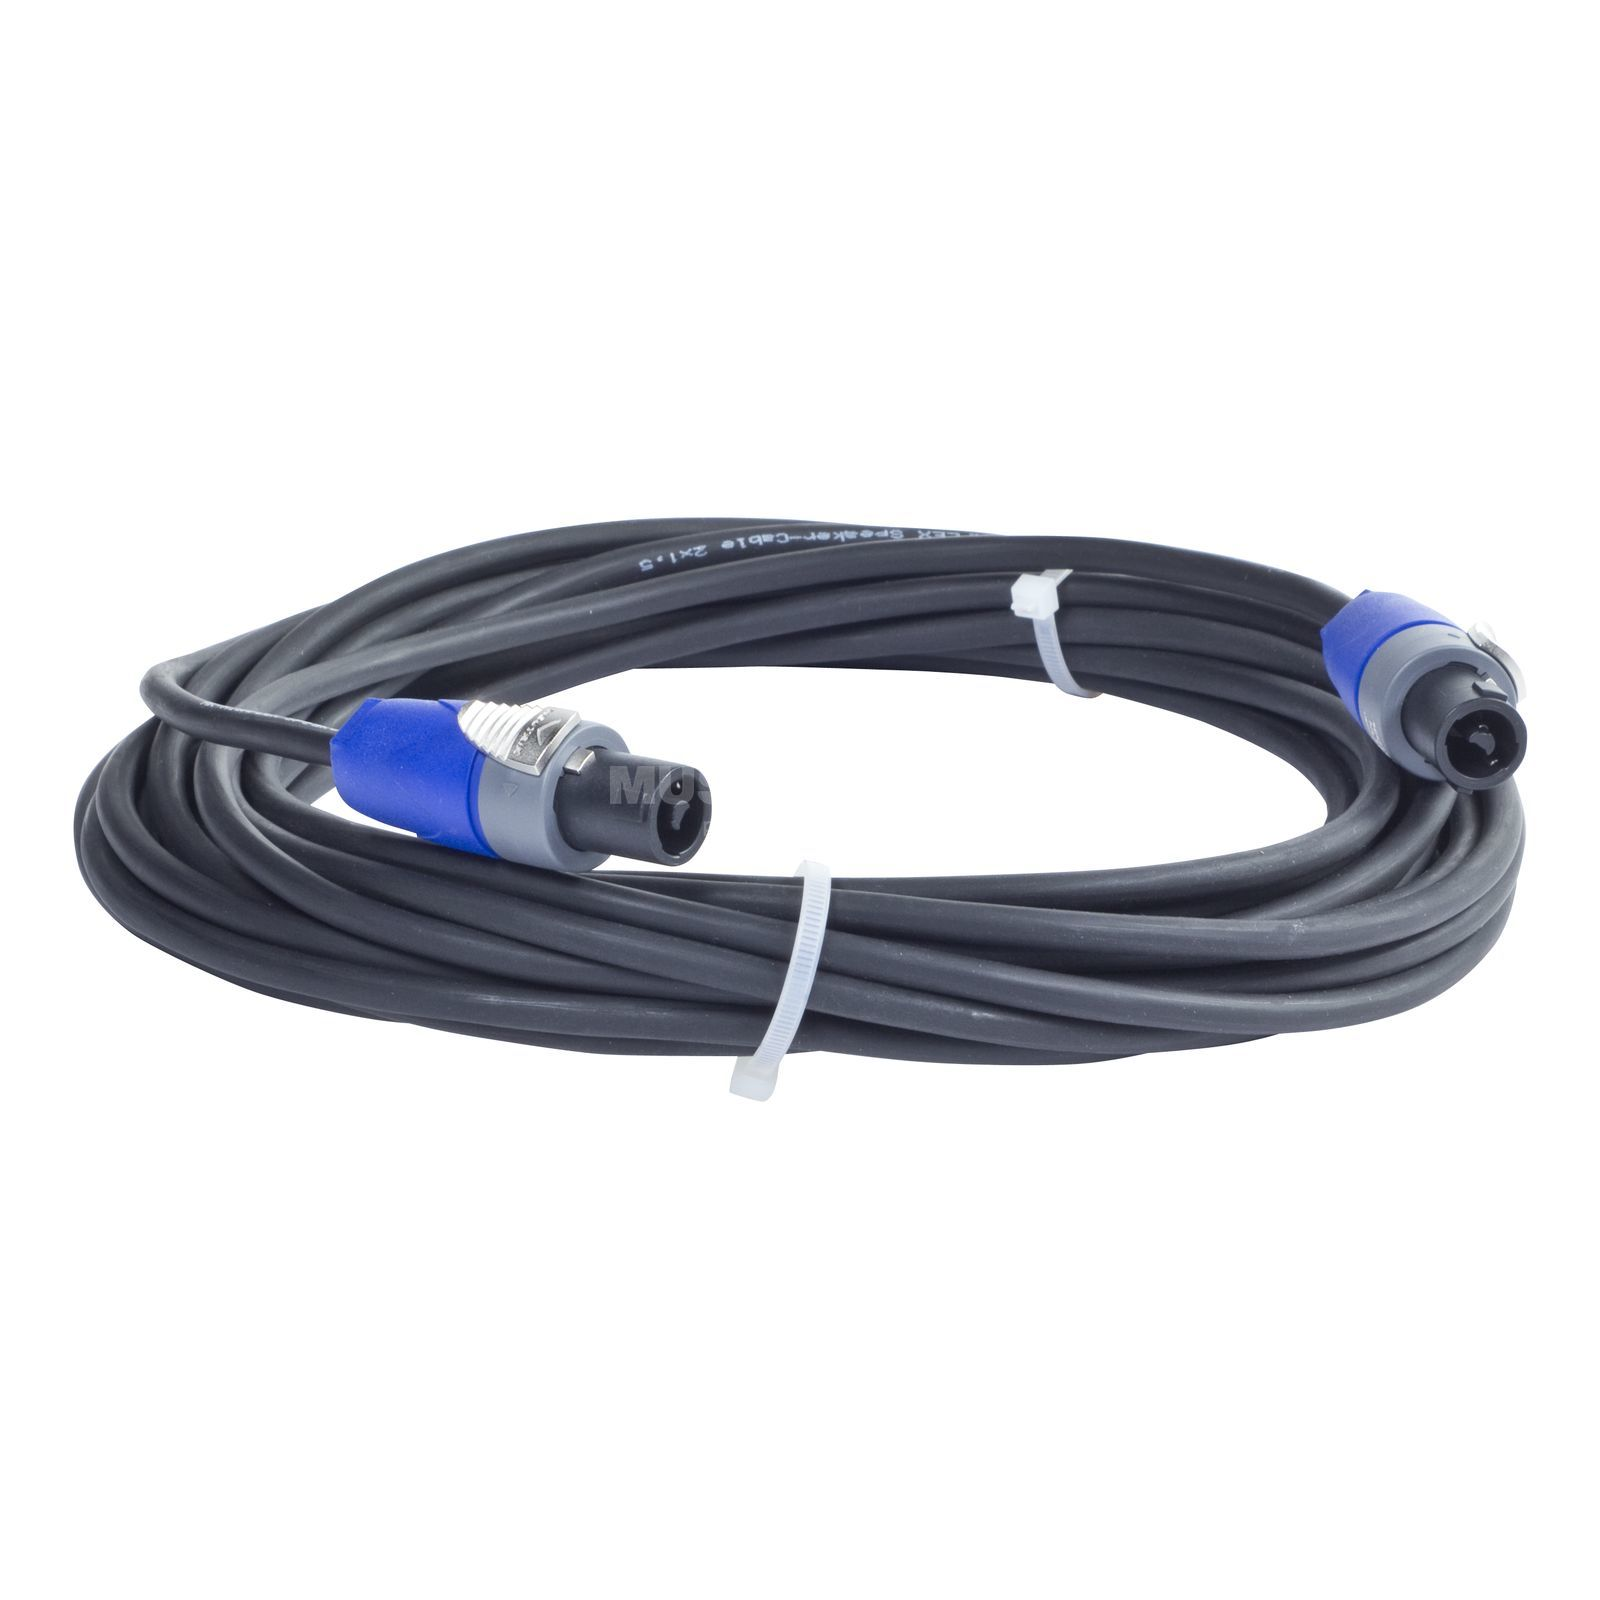 MUSIC STORE LS-Kabel 10m Speakon PRO 2x 1,5mm², Neutrikstecker Produktbillede